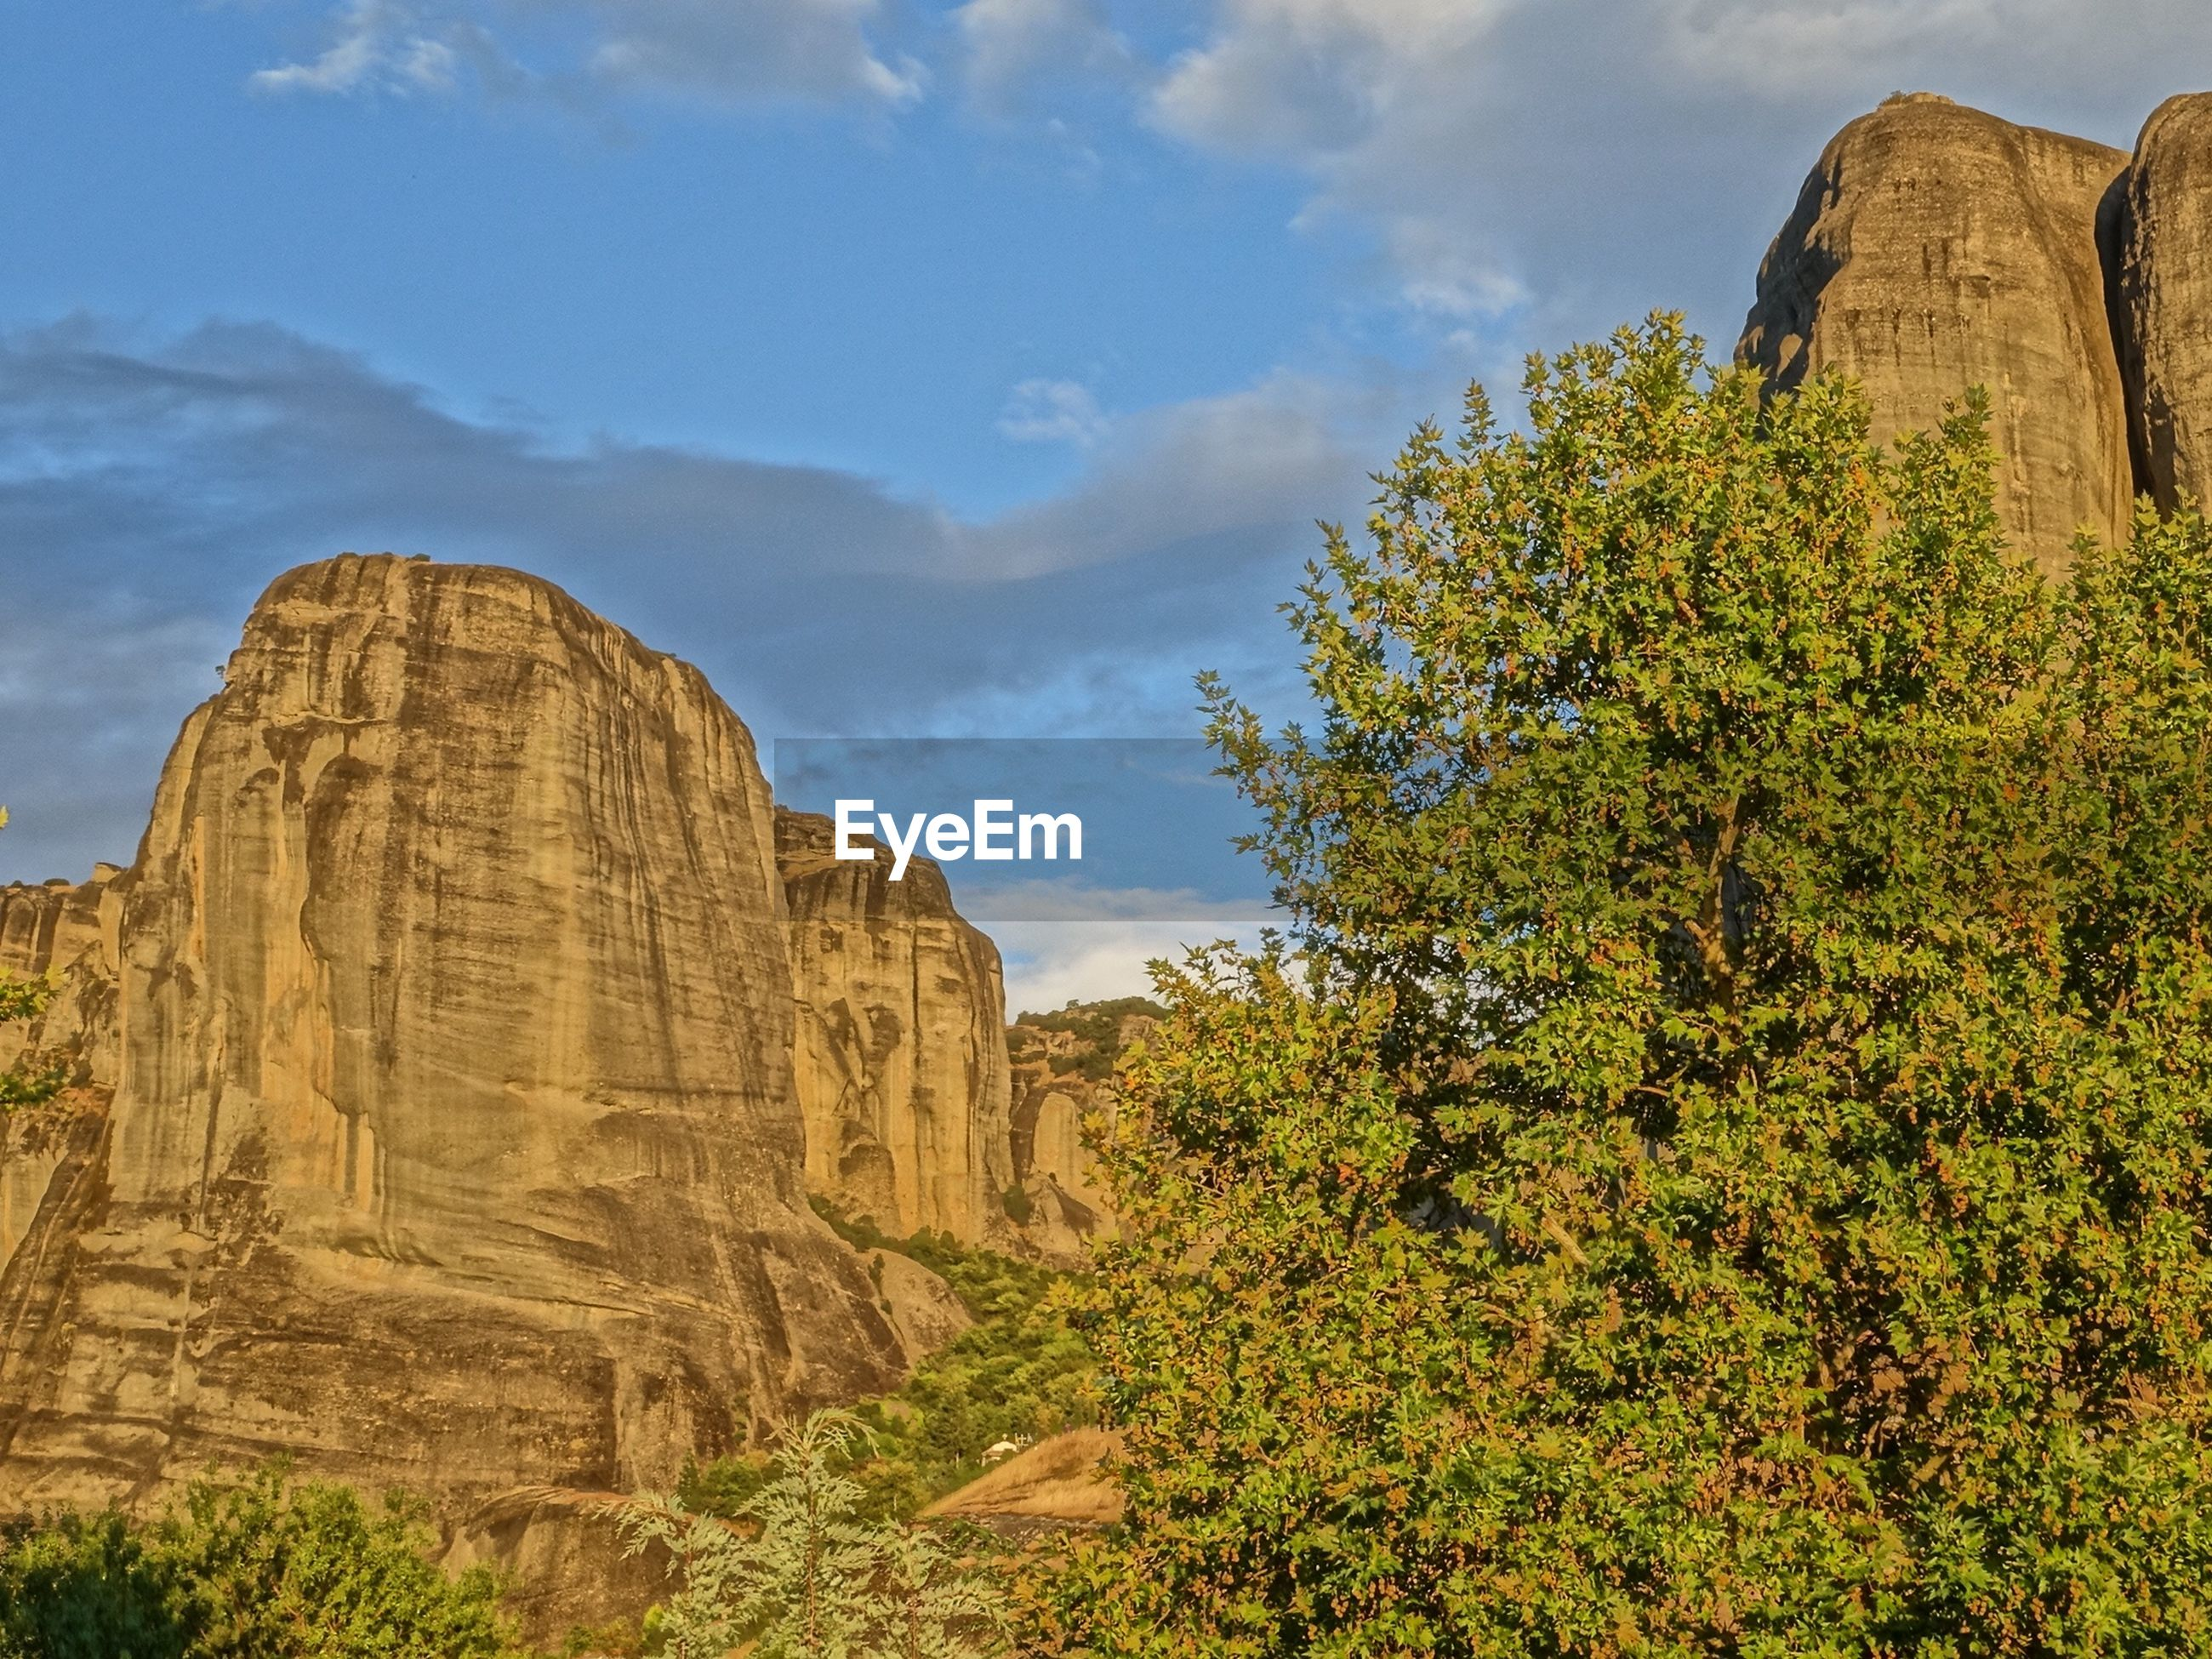 sky, tranquility, tree, nature, rock formation, beauty in nature, tranquil scene, scenics, growth, rock - object, landscape, plant, low angle view, cloud - sky, cloud, green color, non-urban scene, travel destinations, day, outdoors